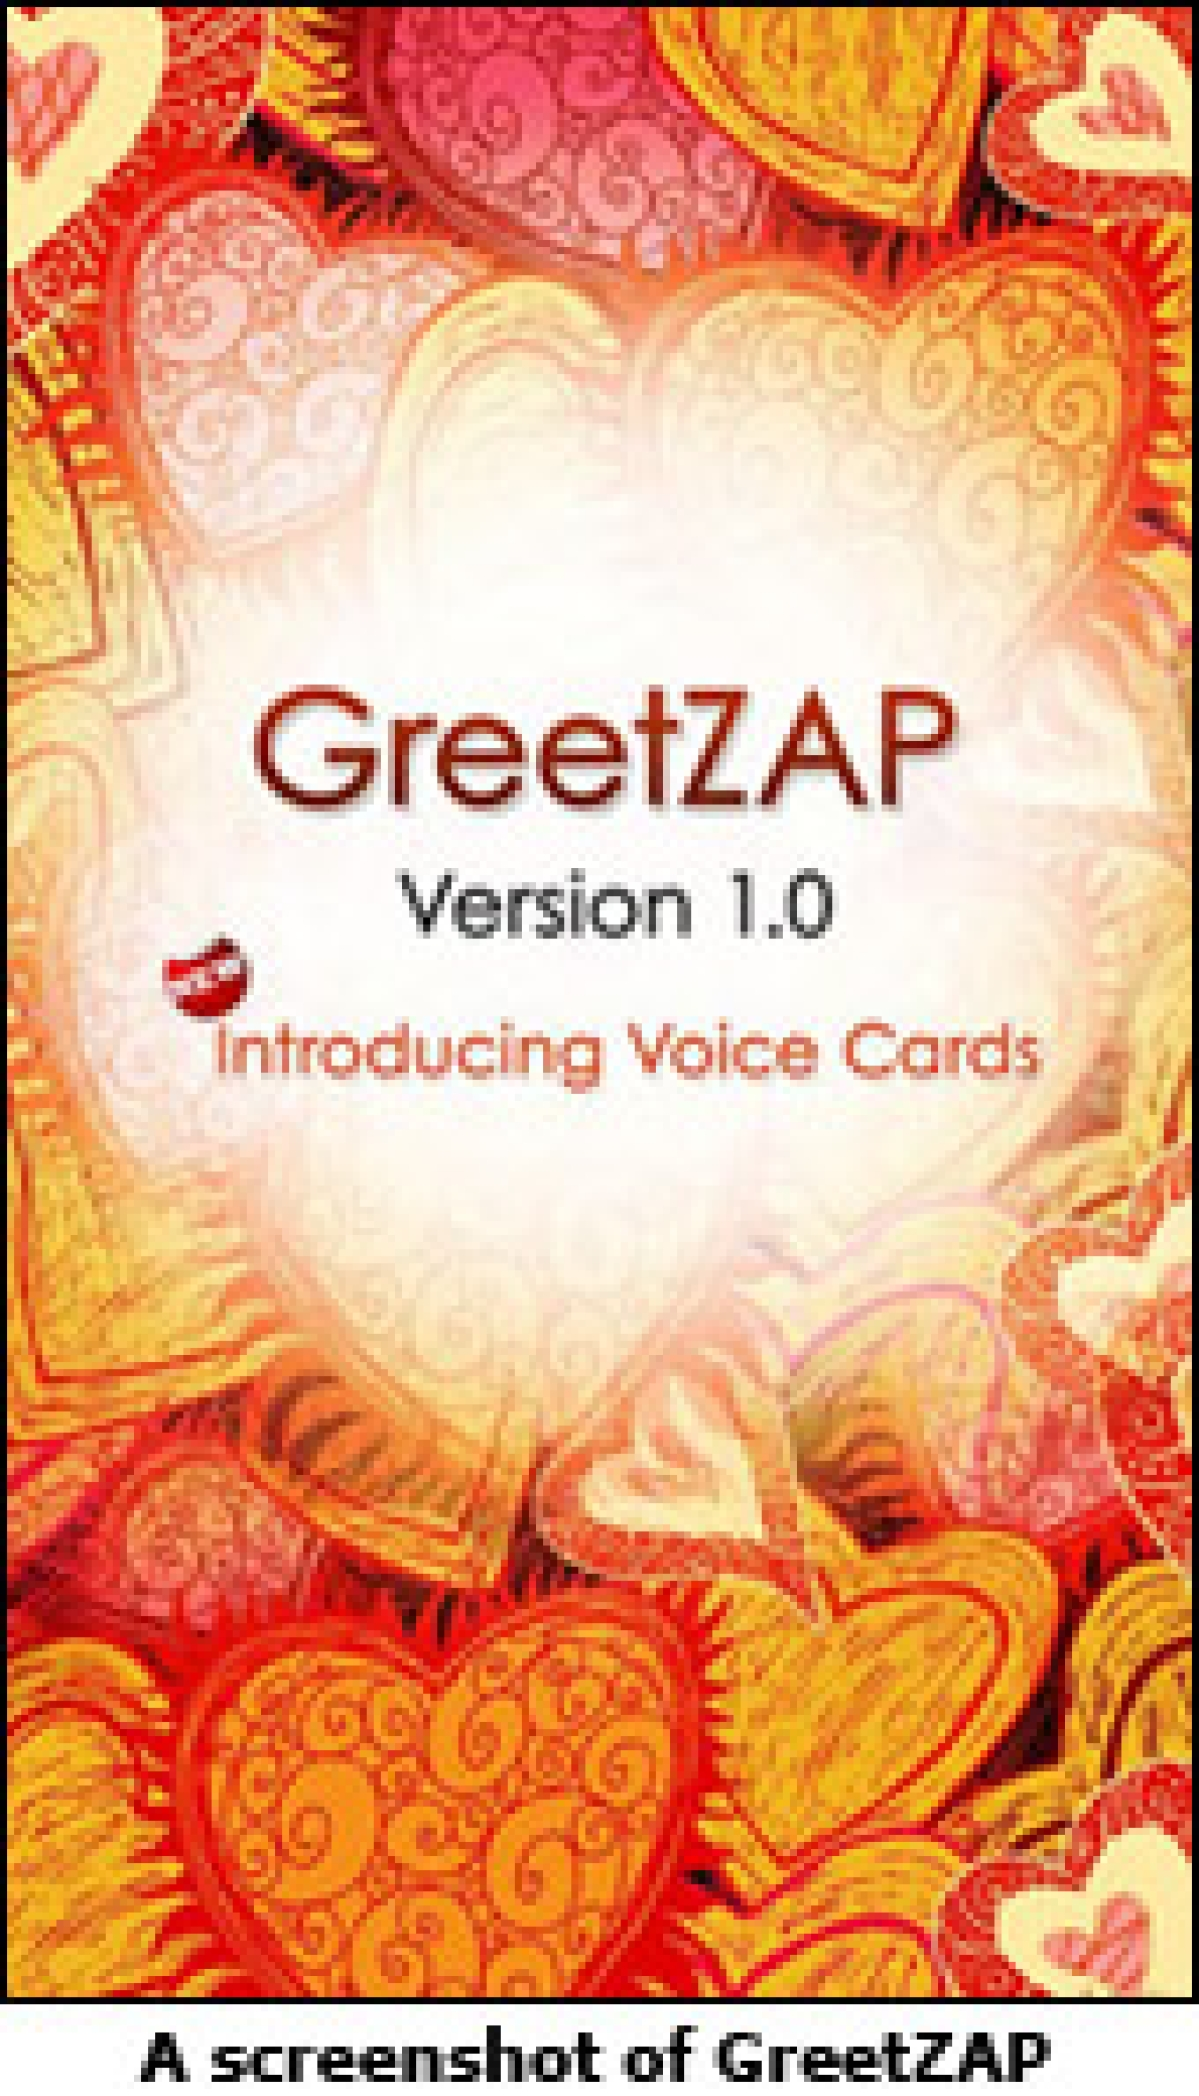 Times Mobile launches mobile greetings app GreetZAP